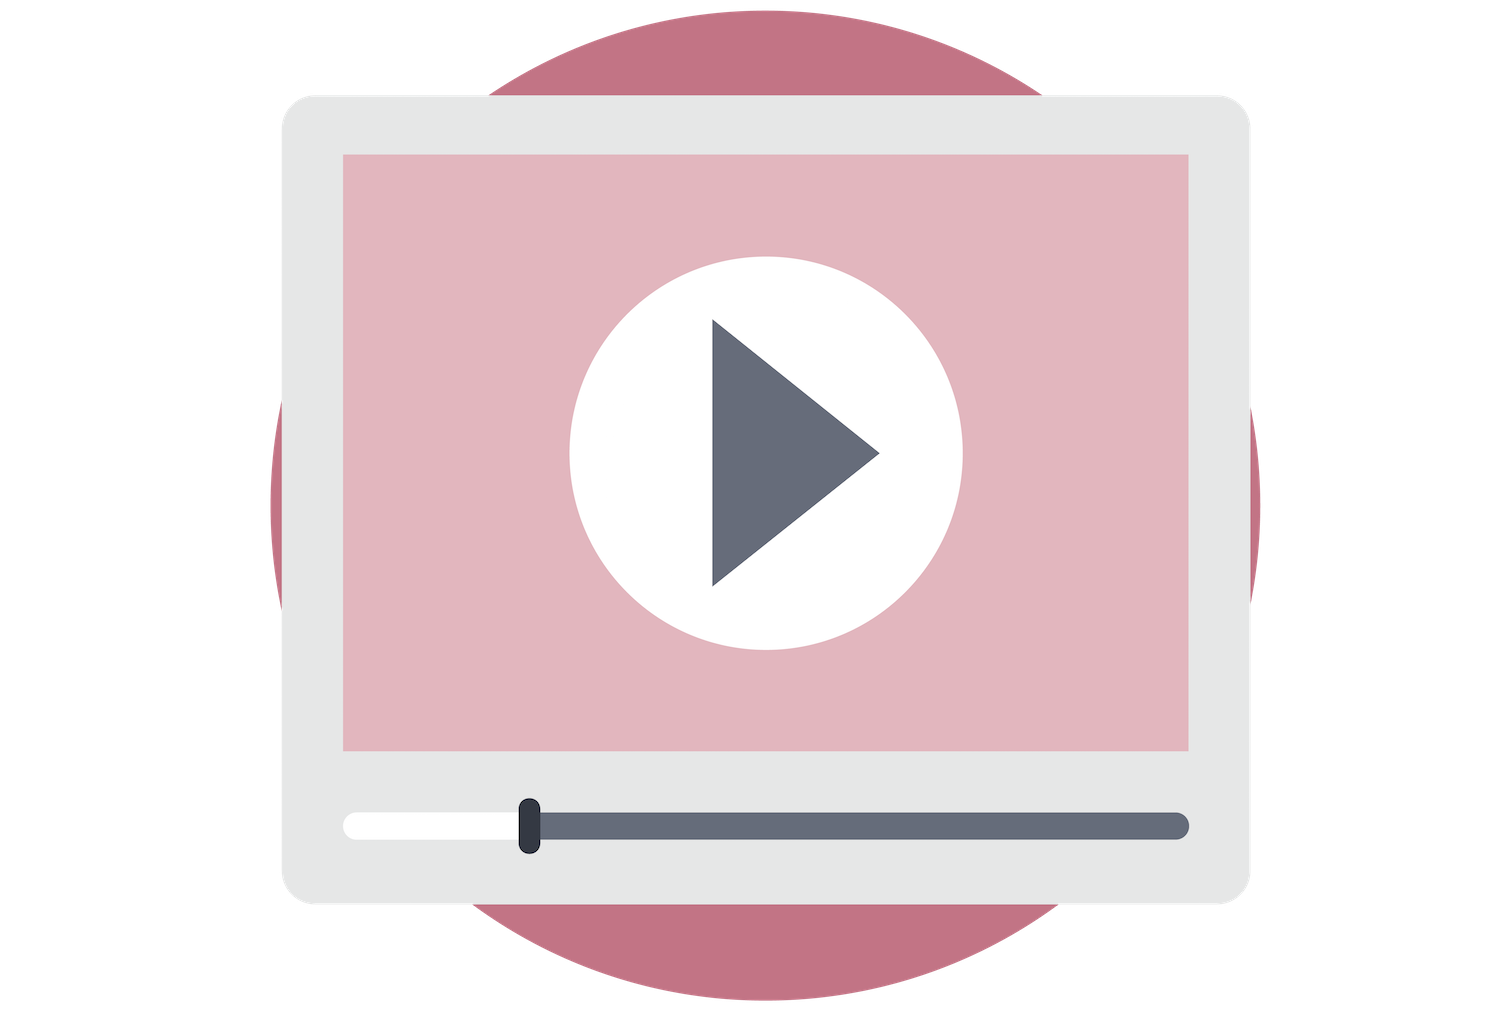 Square Secrets video lessons video icon